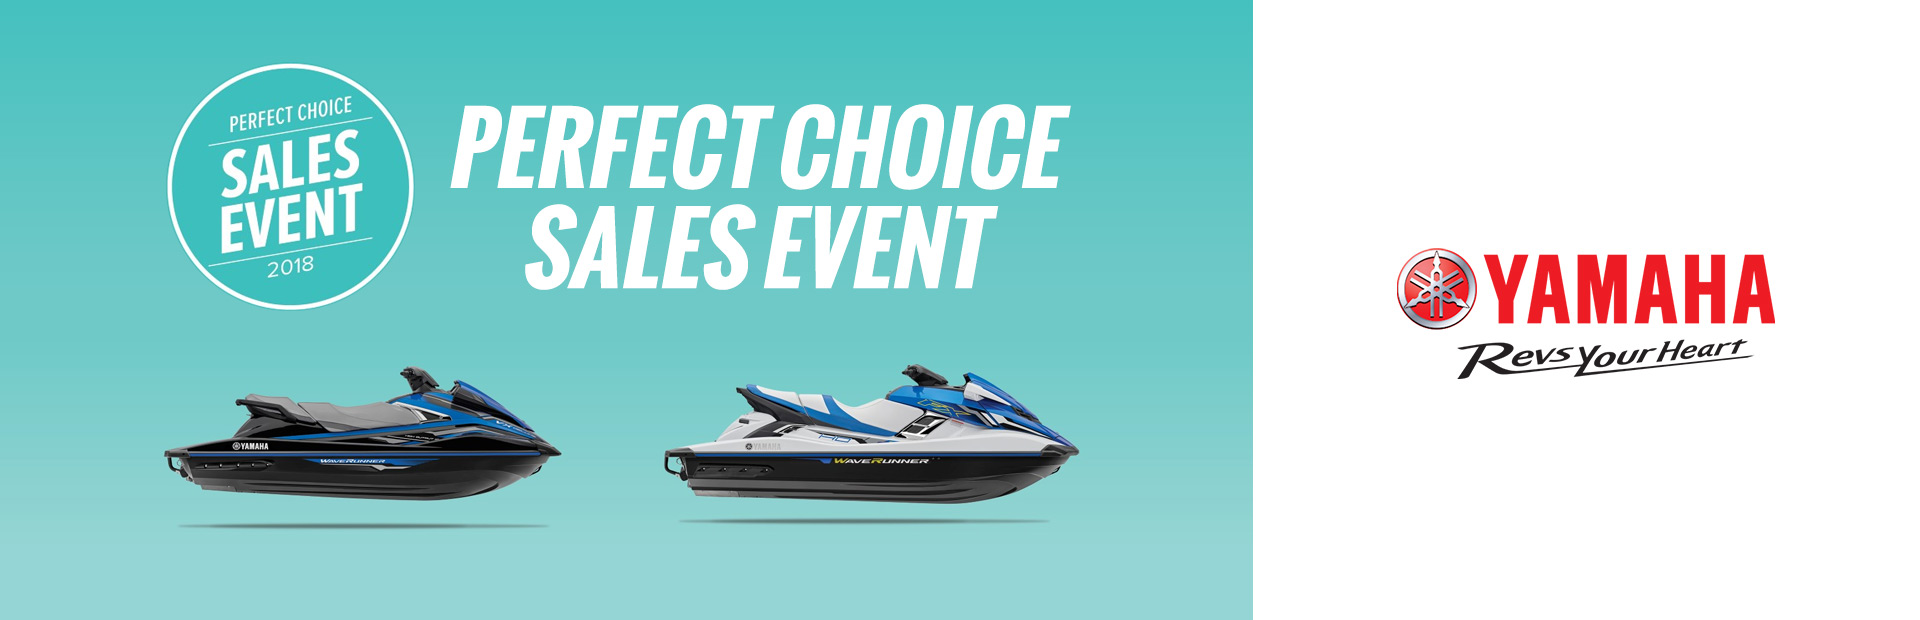 Perfect Choice Sales Event